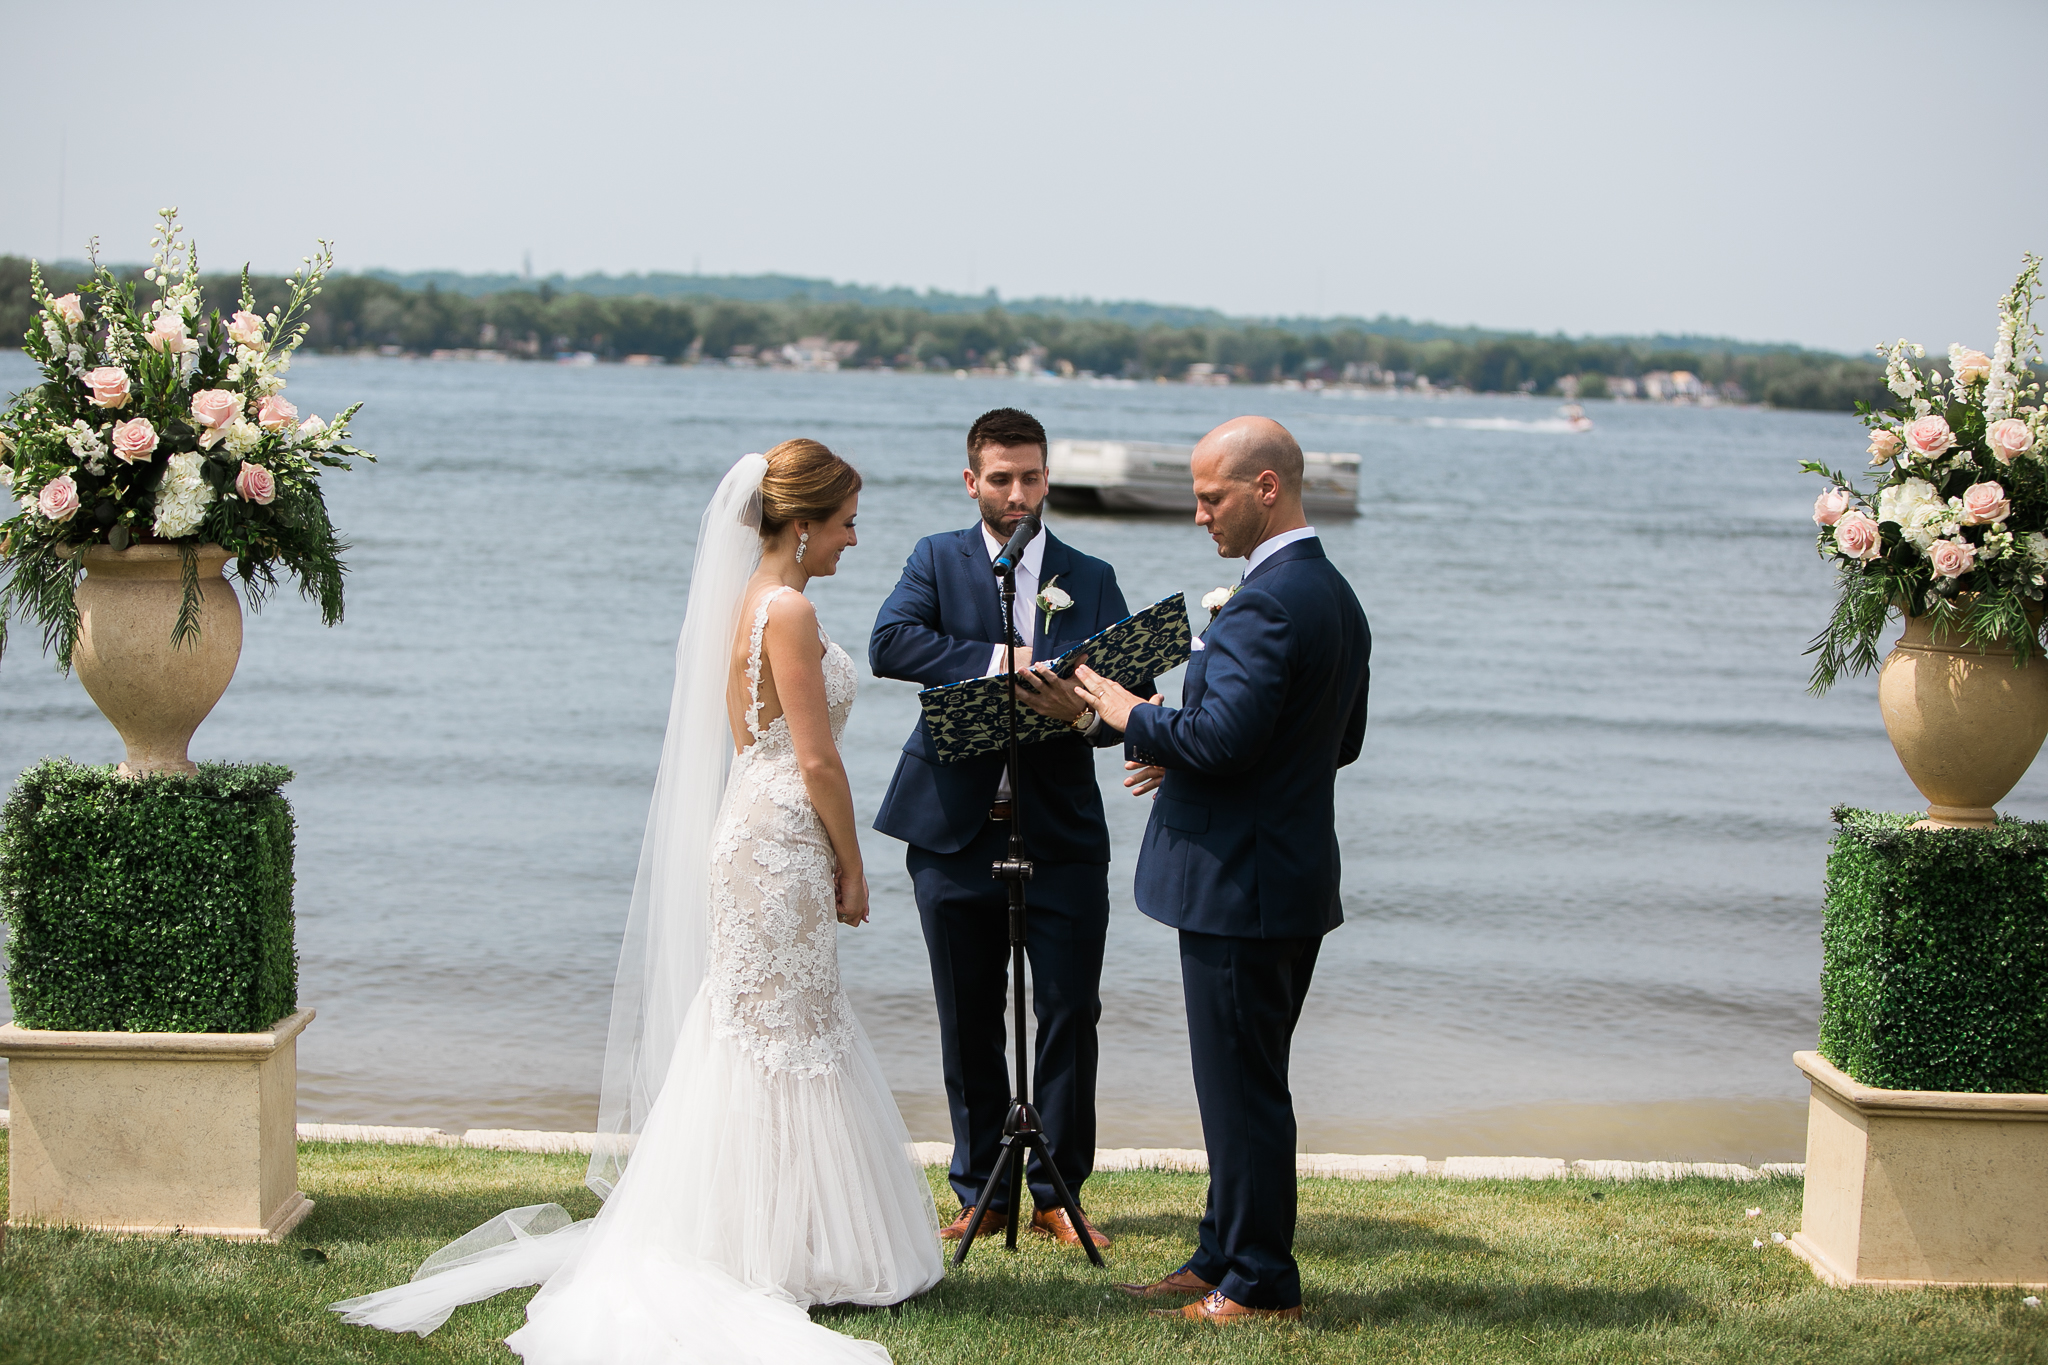 Backyard-Wisconsin-Lake-wedding_079.jpg